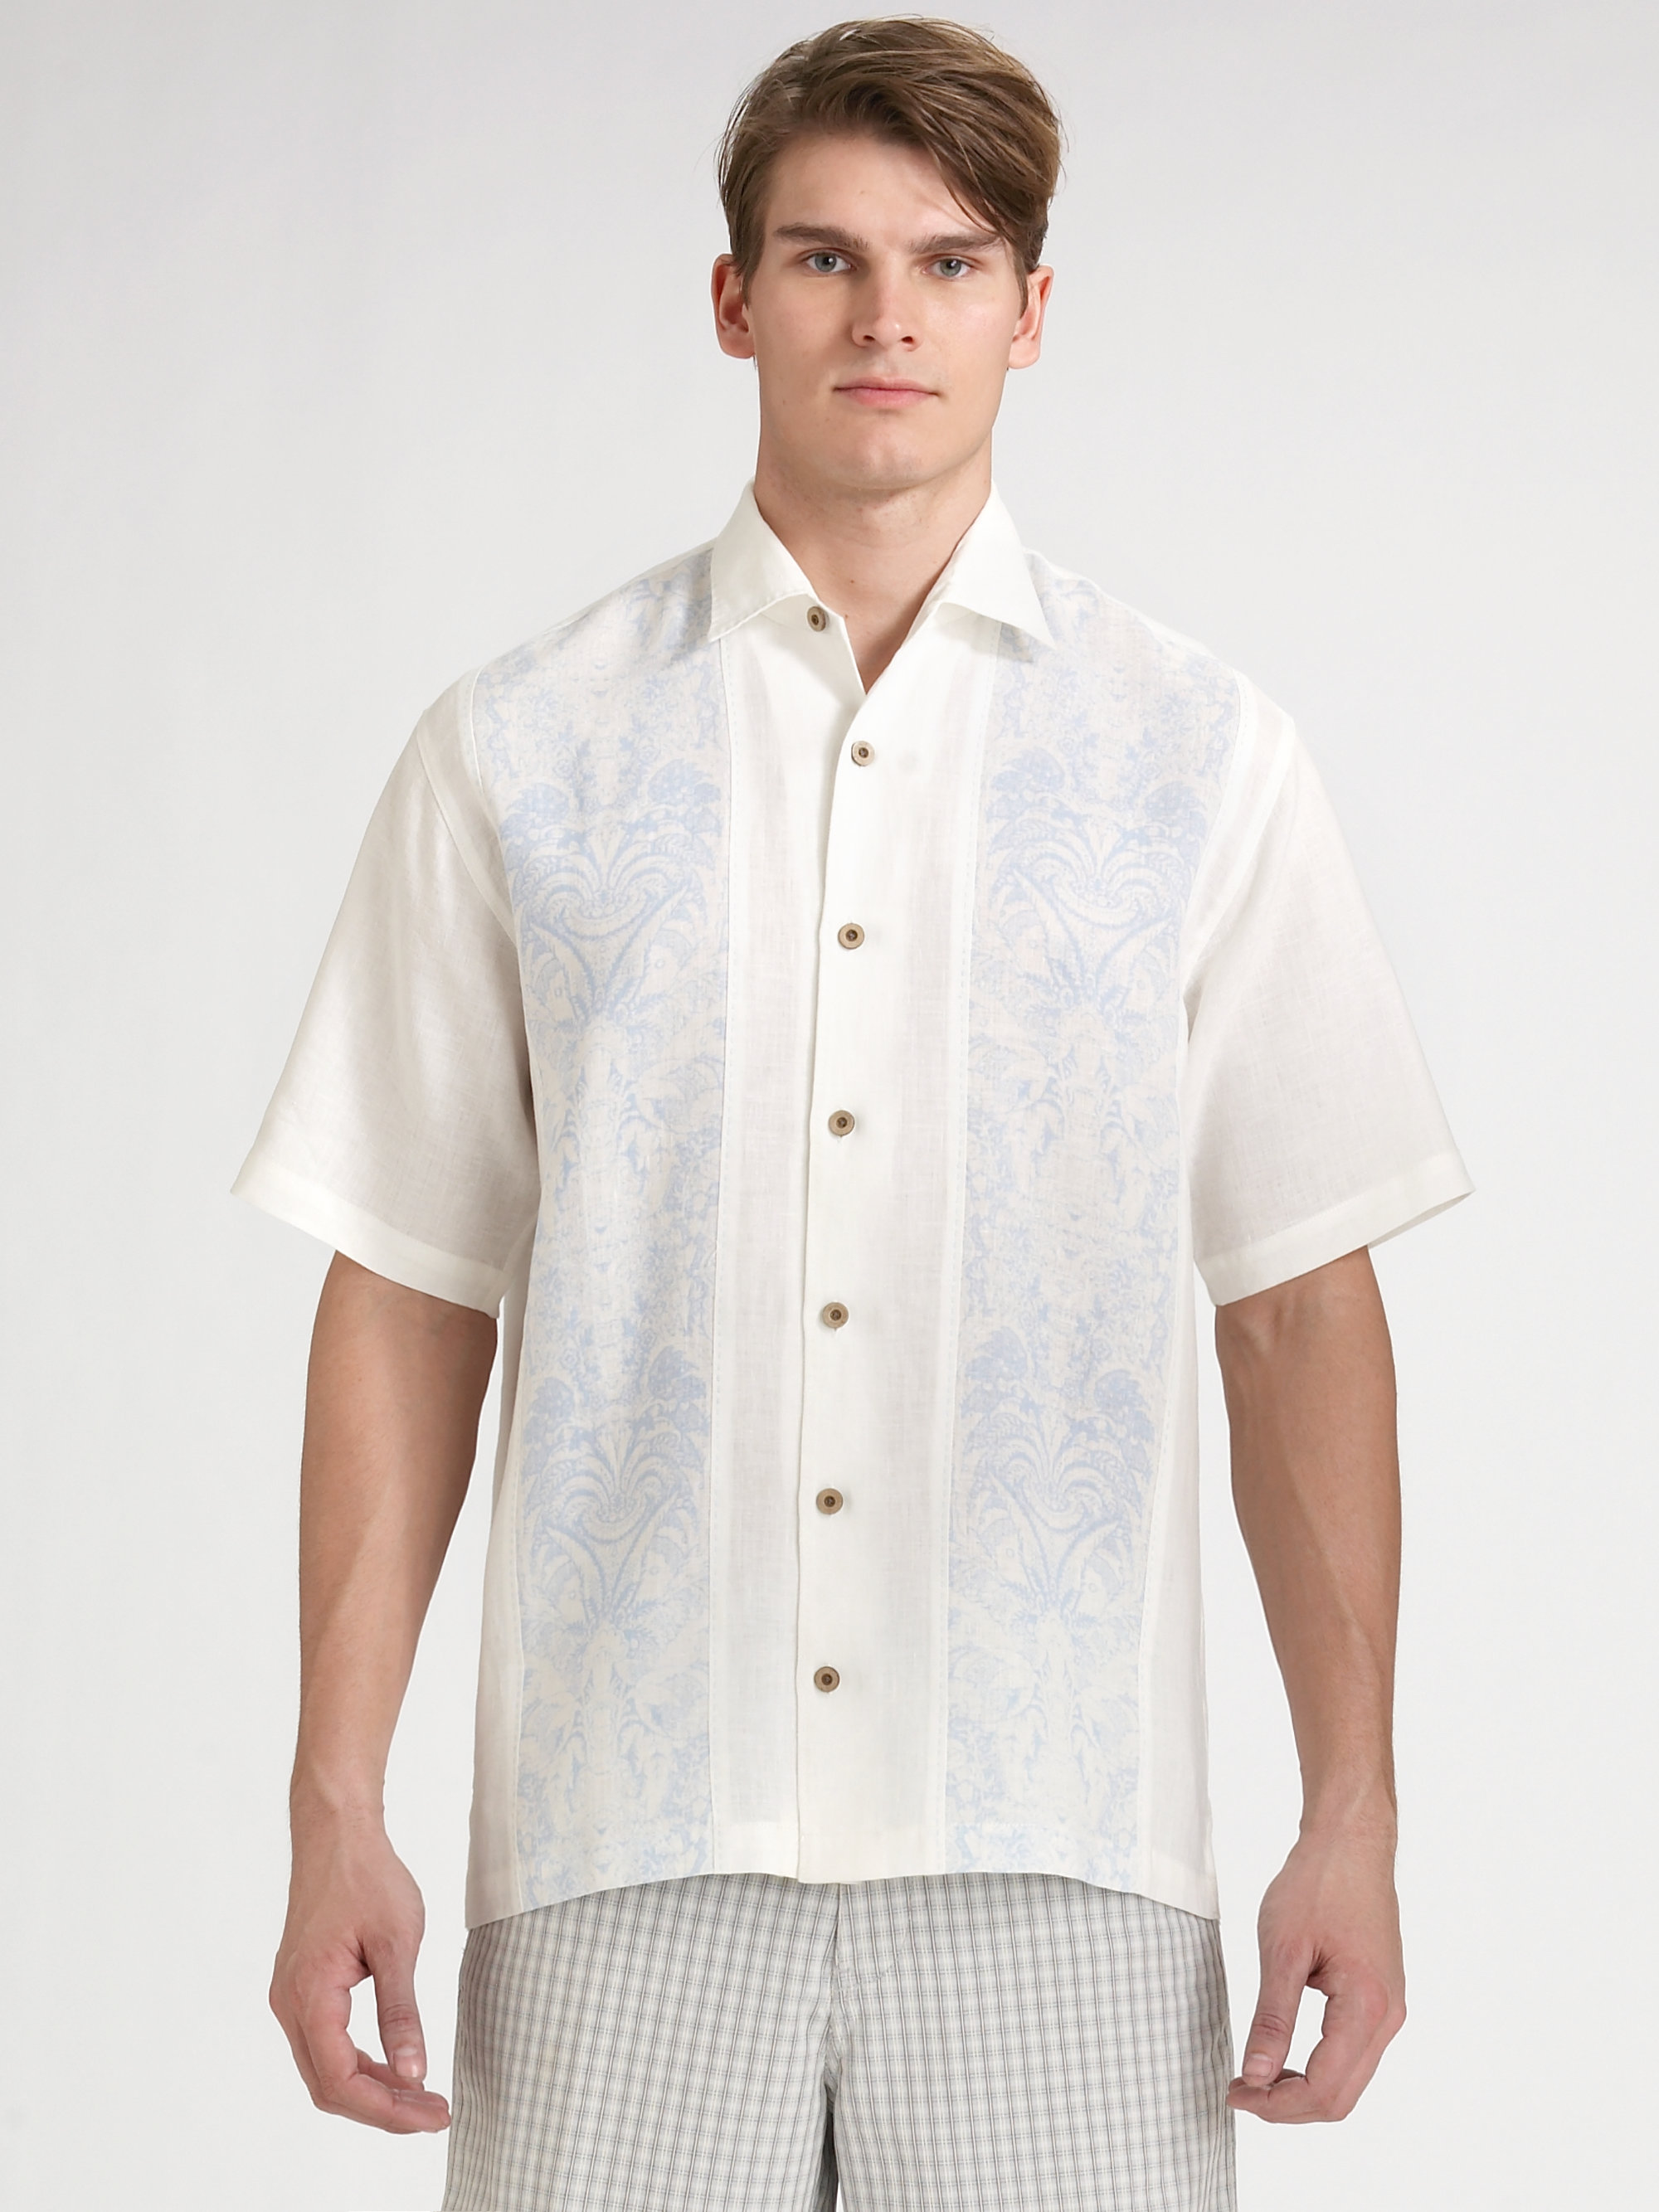 Tommy Bahama Martinique Line Shirt In White For Men Lyst